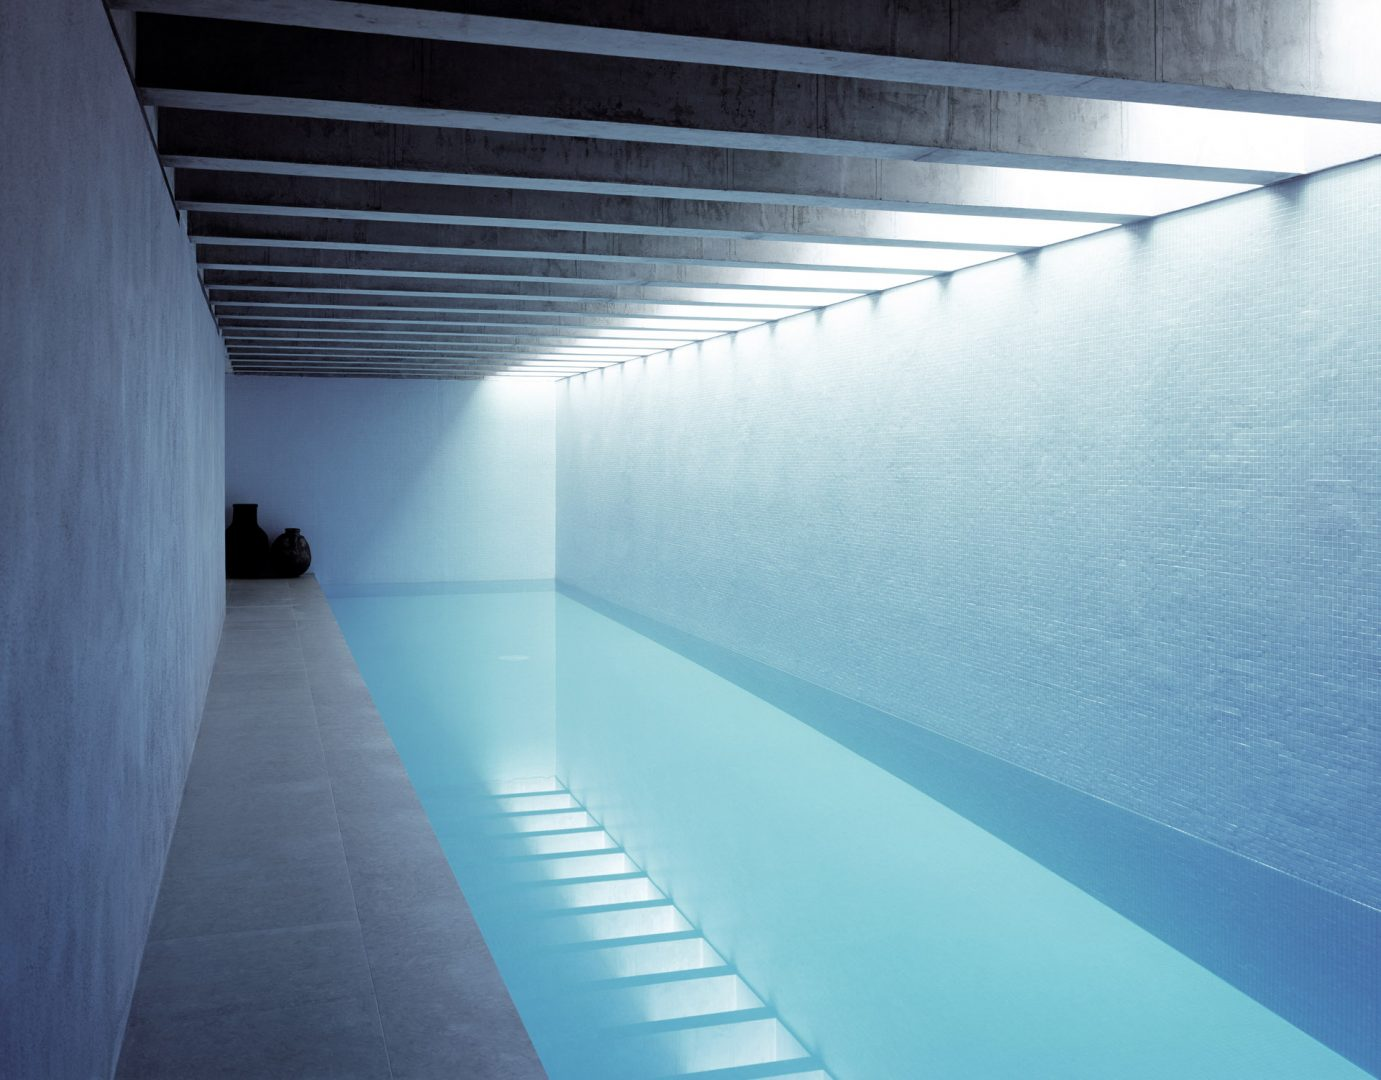 Oblique view of the subterranean toplit 20m swimming pool at the Long House